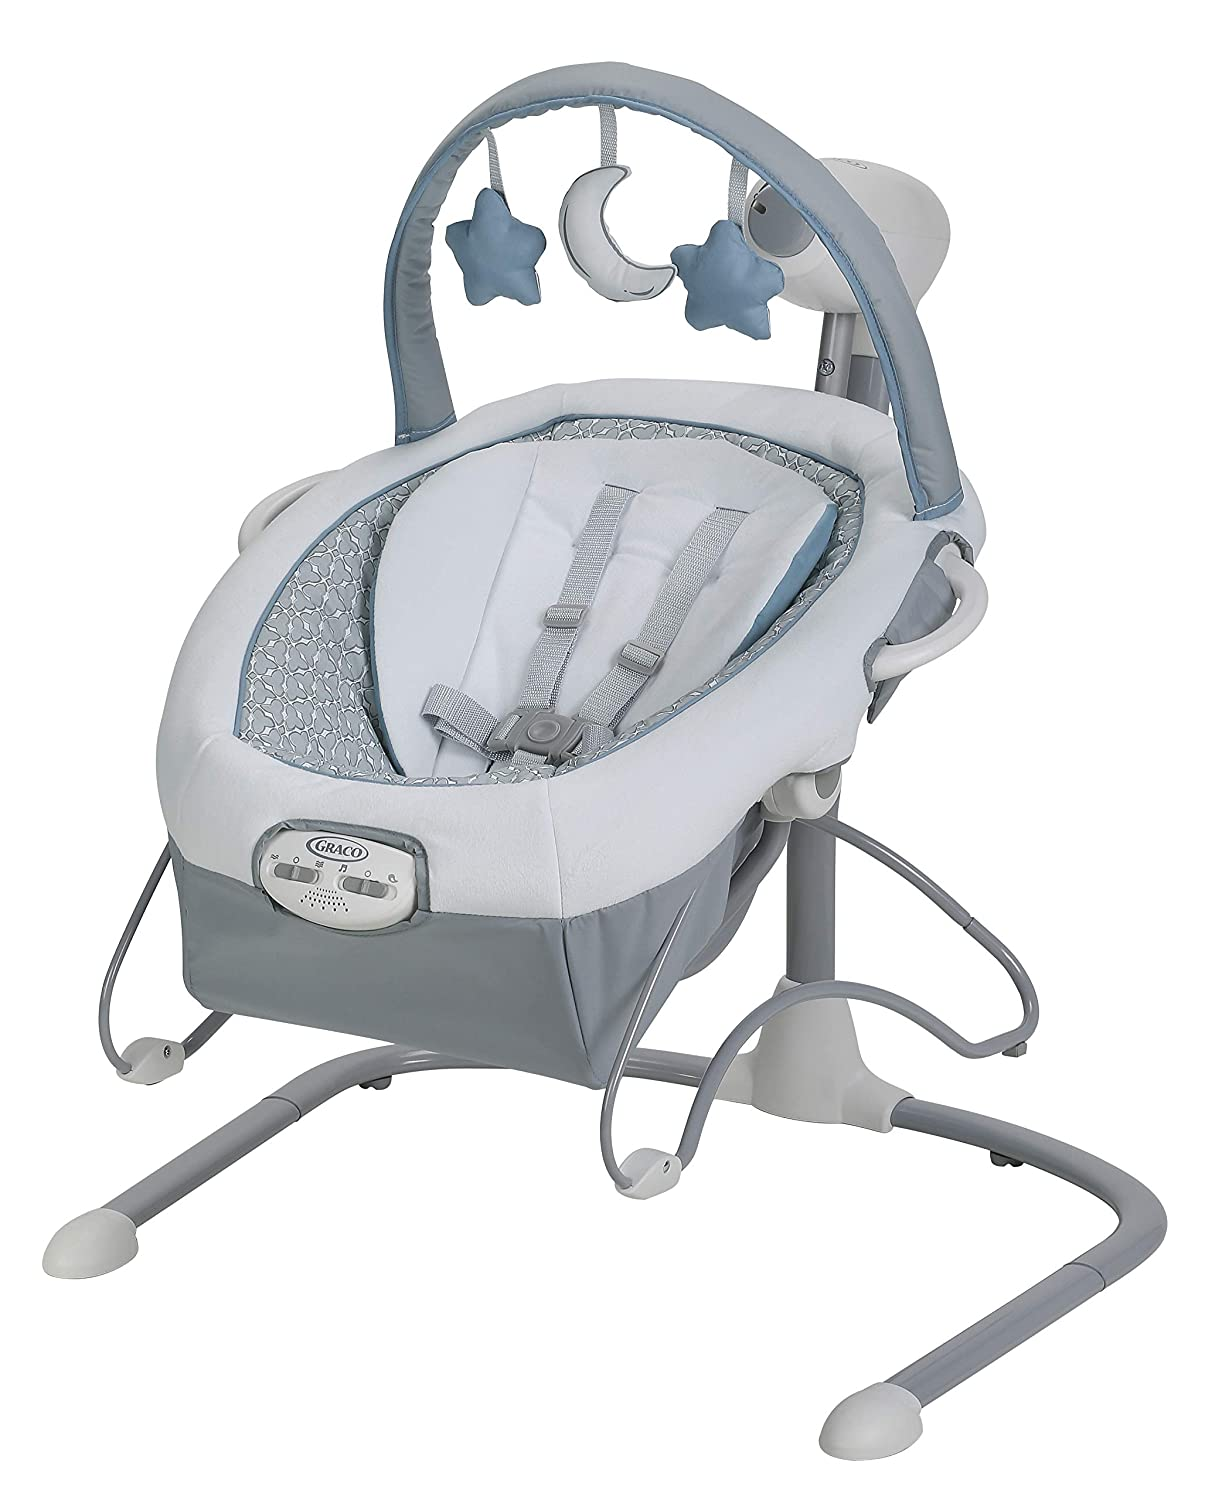 Alden Graco Duet Sway LX Swing with Portable Bouncer